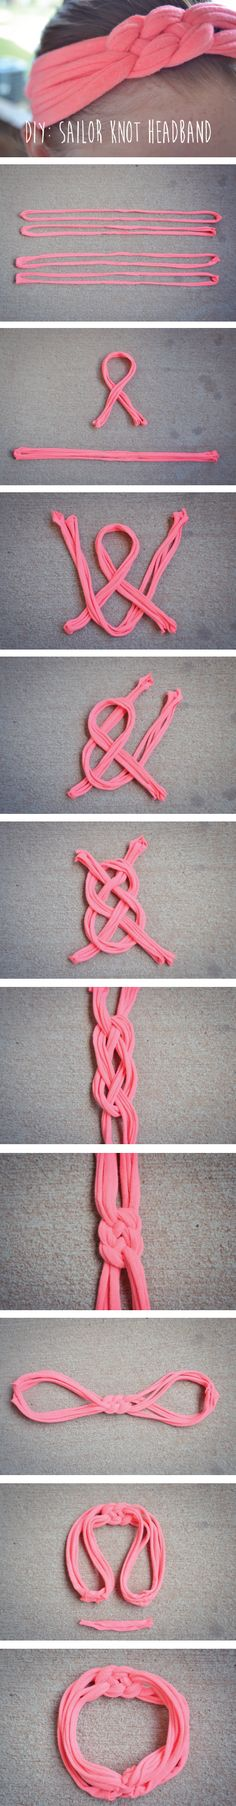 http://dailydorius.blogspot.com/2014/06/diy-01-knotted-sailor-headband.html  DIY: Sailor knot headband! This is super easy to make and the tutorial is easy to follow along. All you need is a pair of scissors and an old t-shirt!